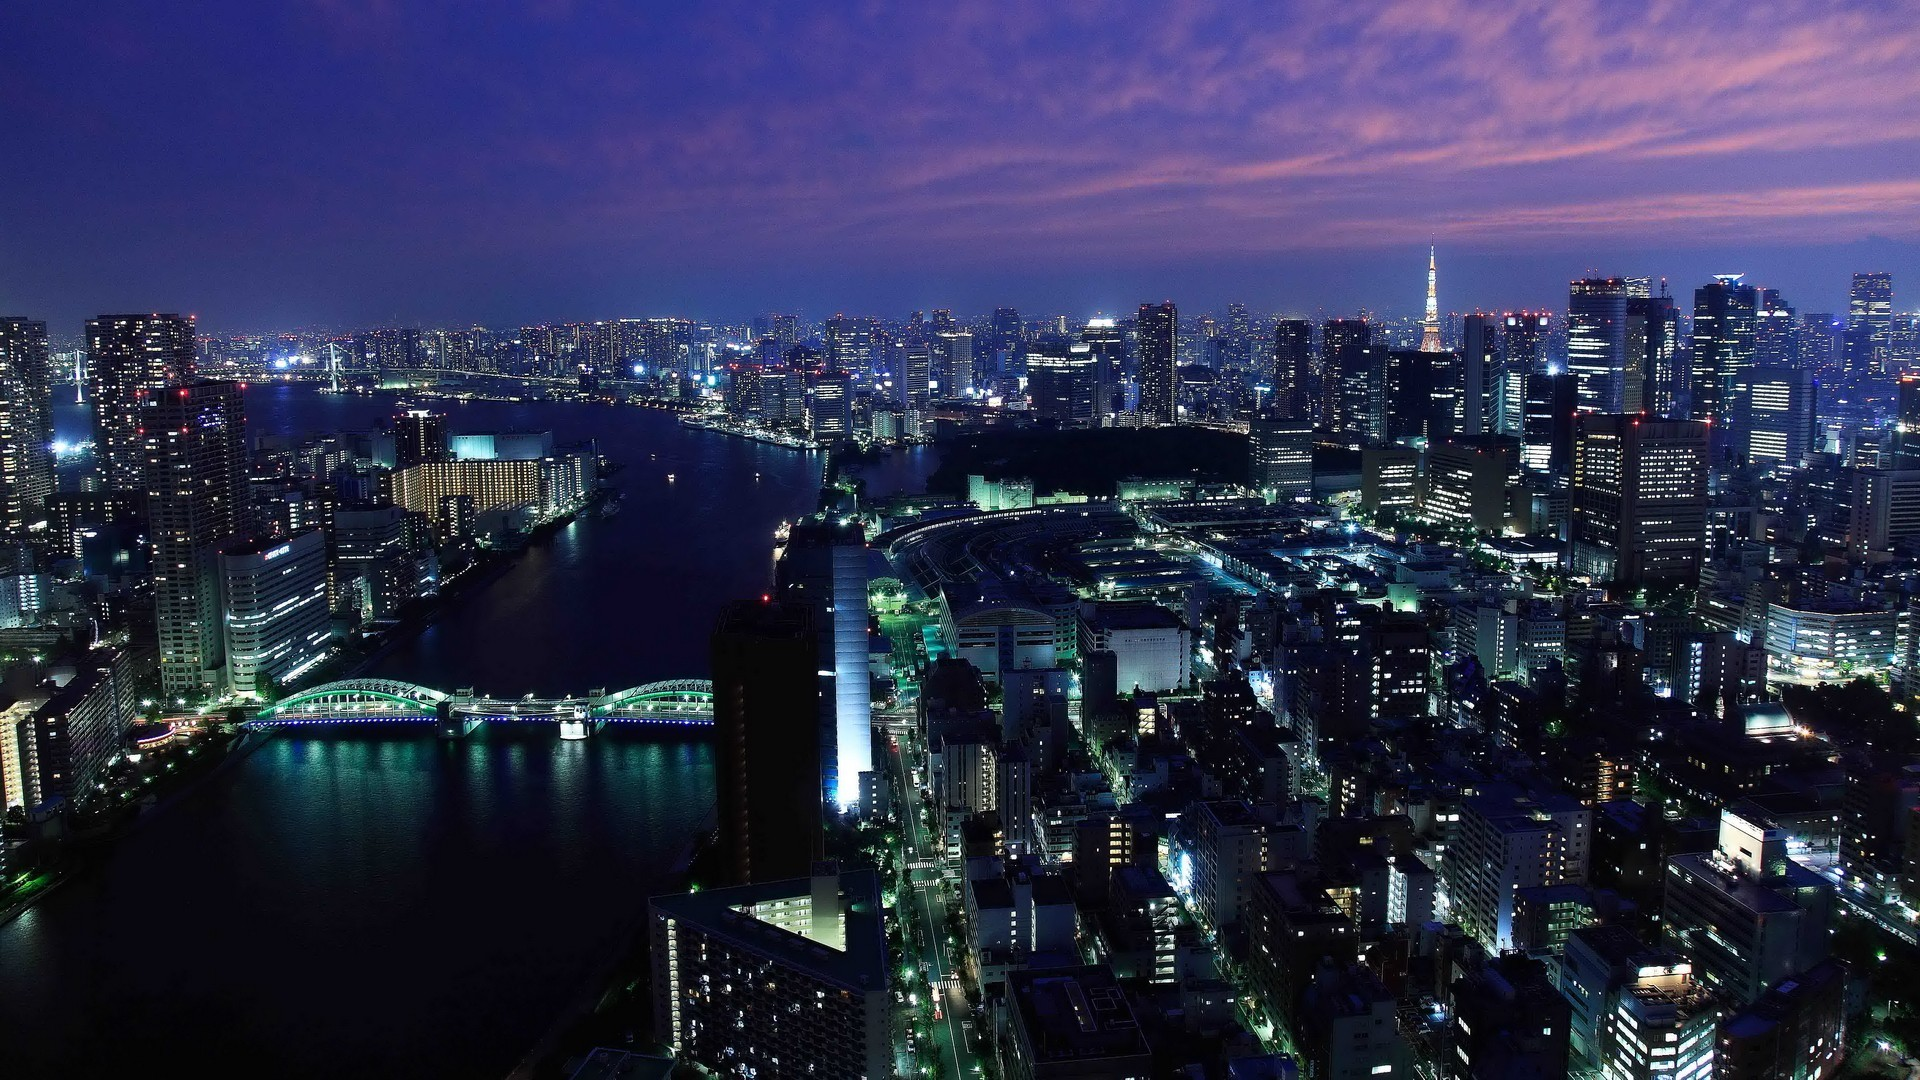 Tokyo Skyline Wallpapers Images As Wallpaper HD